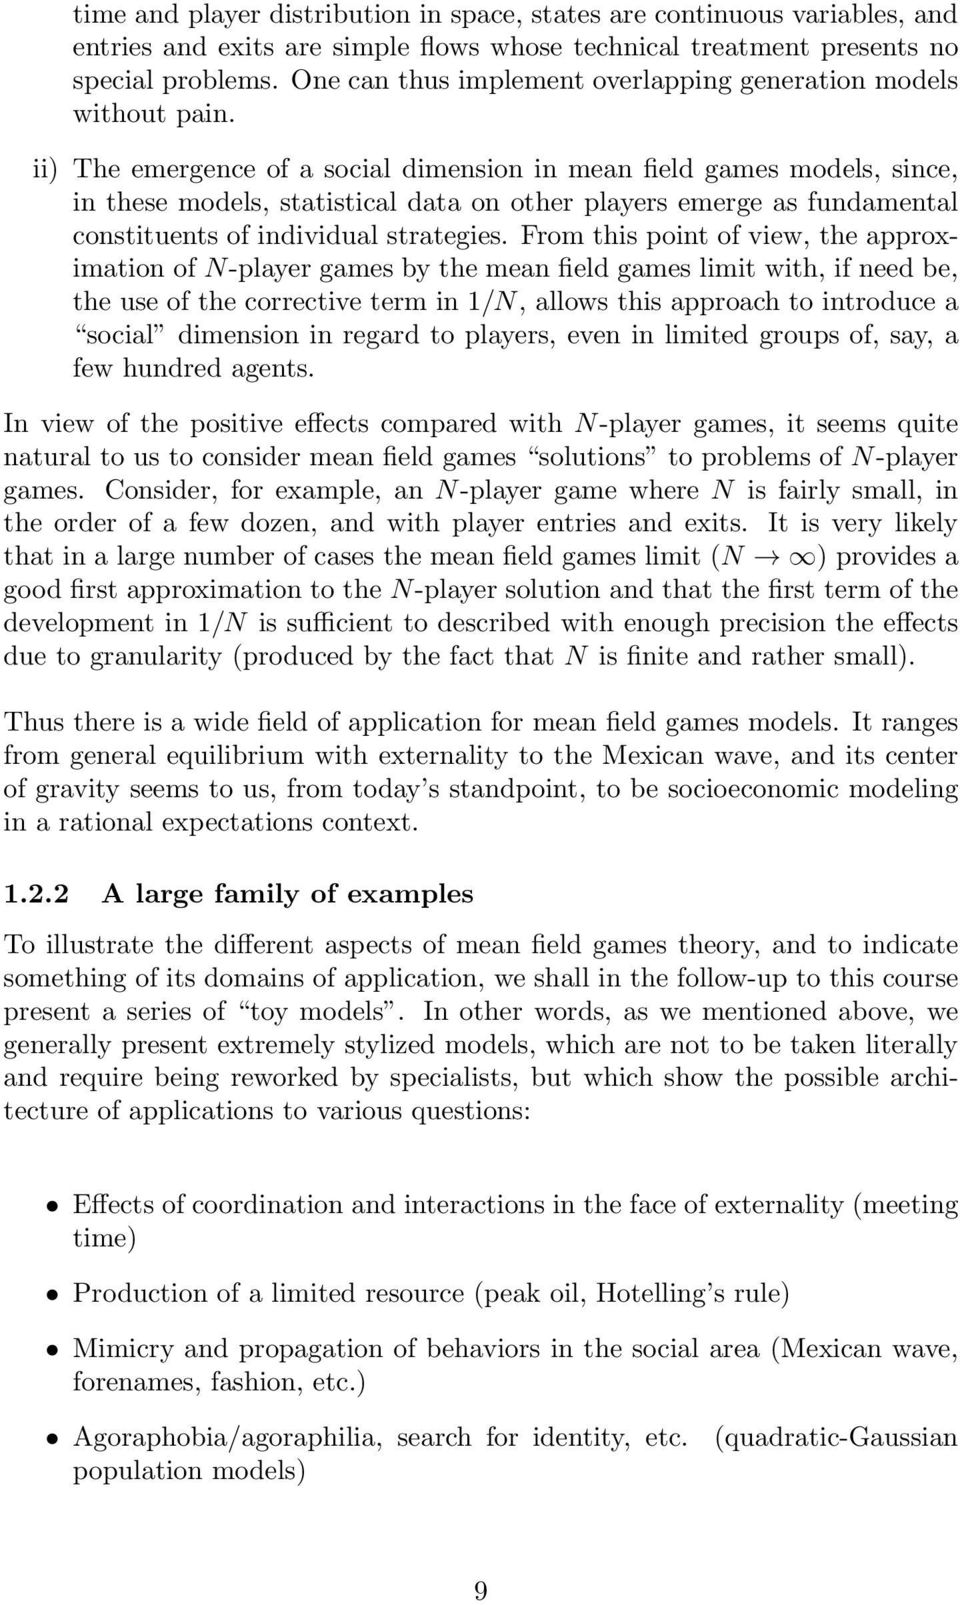 ii) The emergence of a social dimension in mean field games models, since, in these models, statistical data on other players emerge as fundamental constituents of individual strategies.